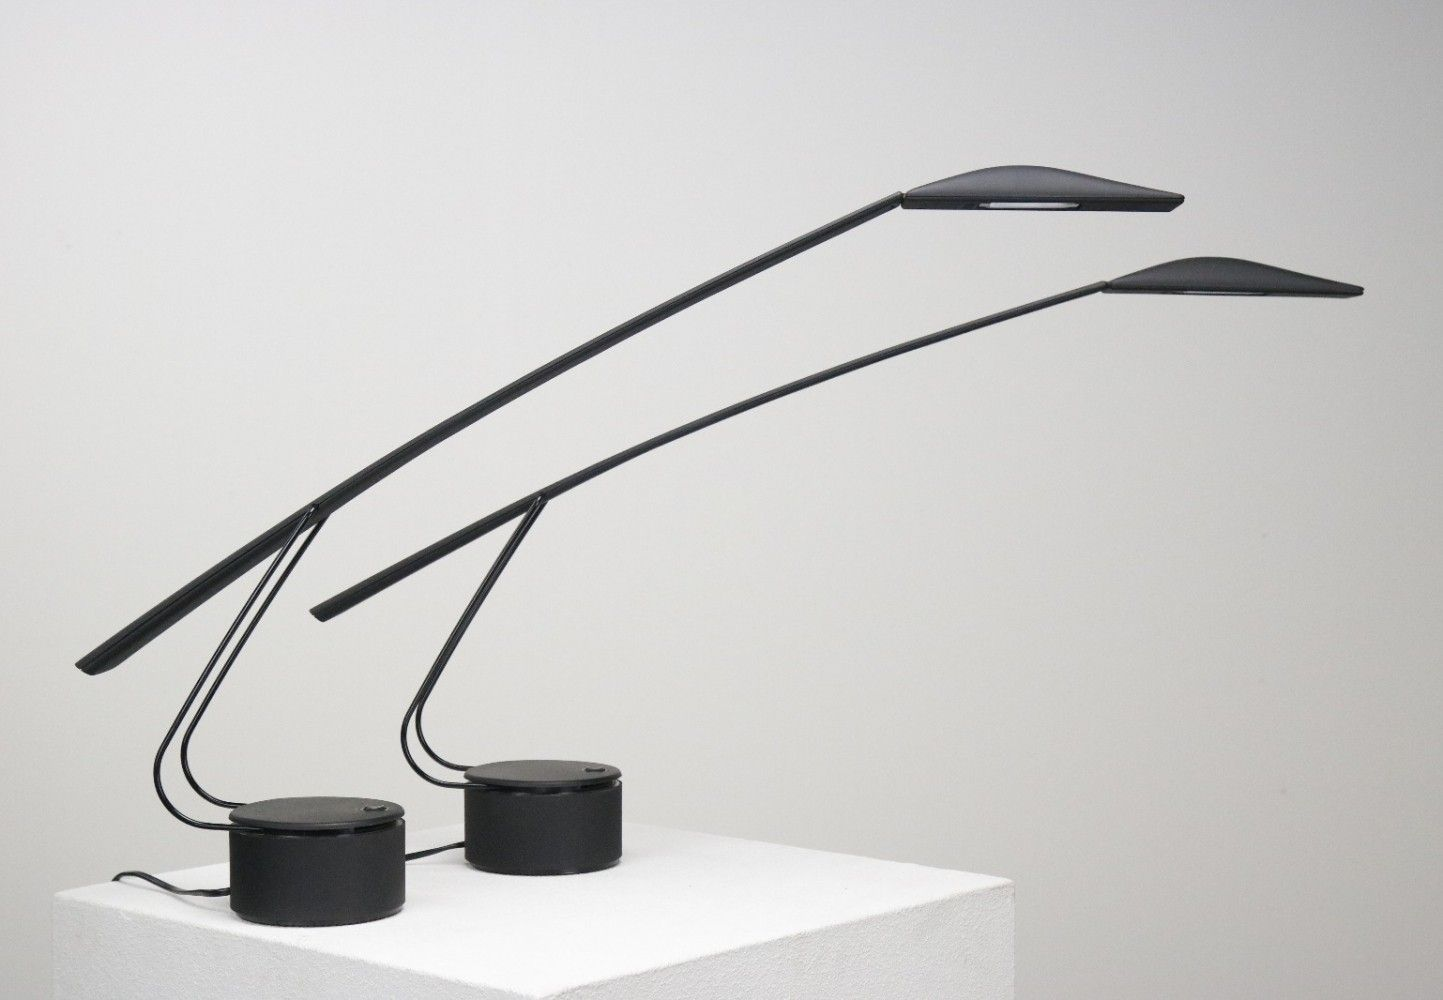 2 X Dove Desk Lamp By Mario Barbaglia Marco Colombo For Paf Studios 1980s Desk Lamp Lamp Upcycle Lamp